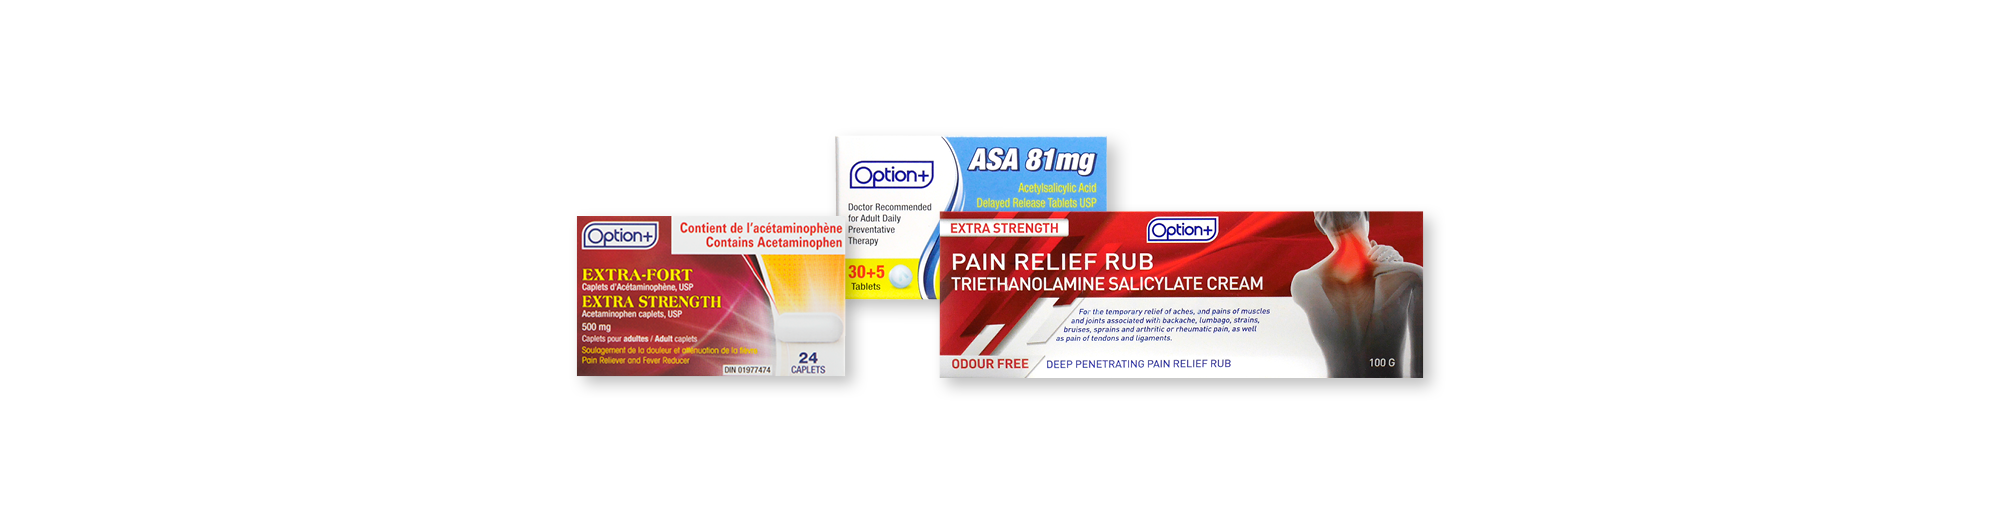 Option+ Pain Relievers